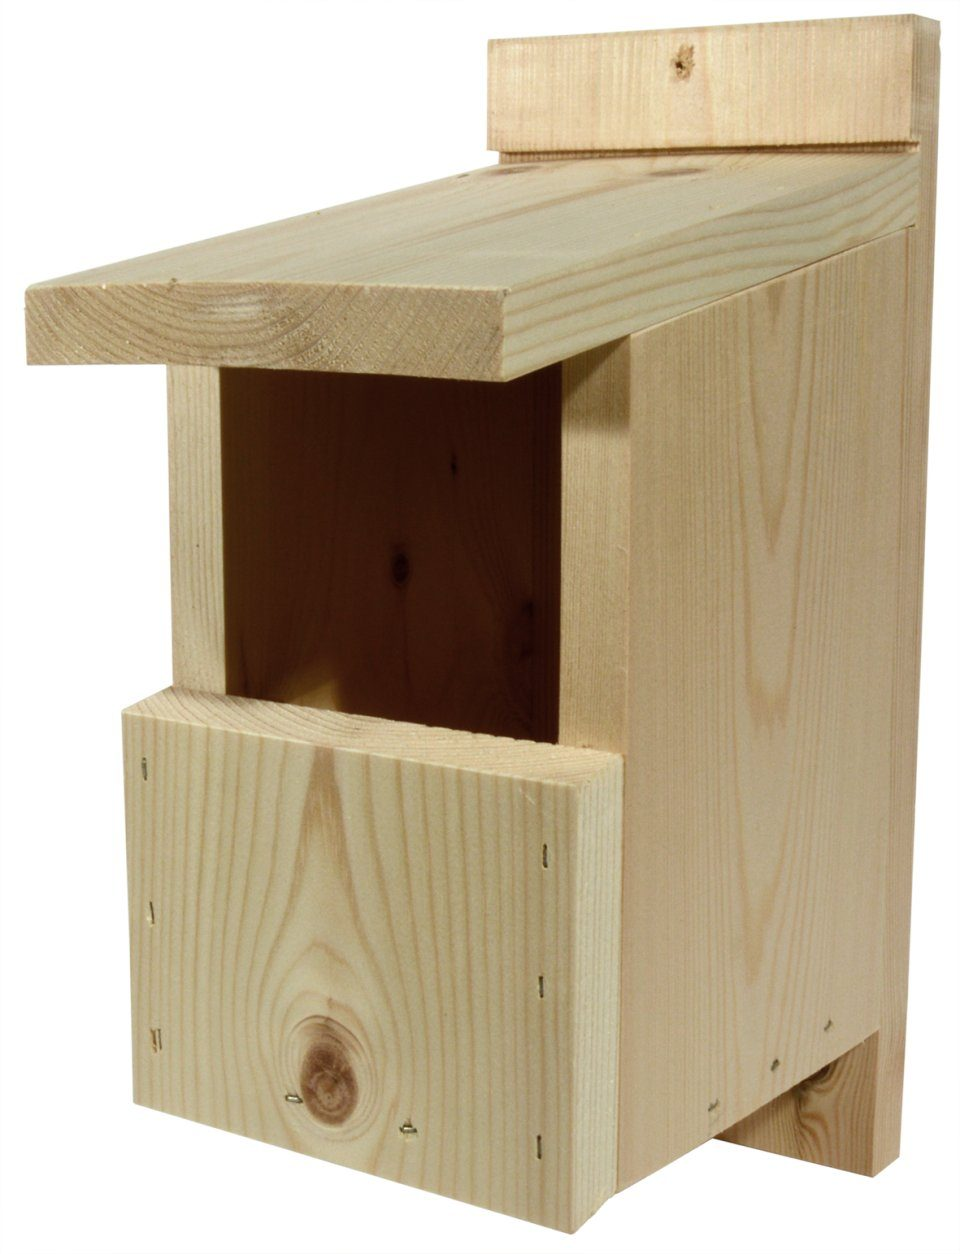 Three Birdhouse Bird Nest Breeding Box Wildlife World Other Bird Supplies